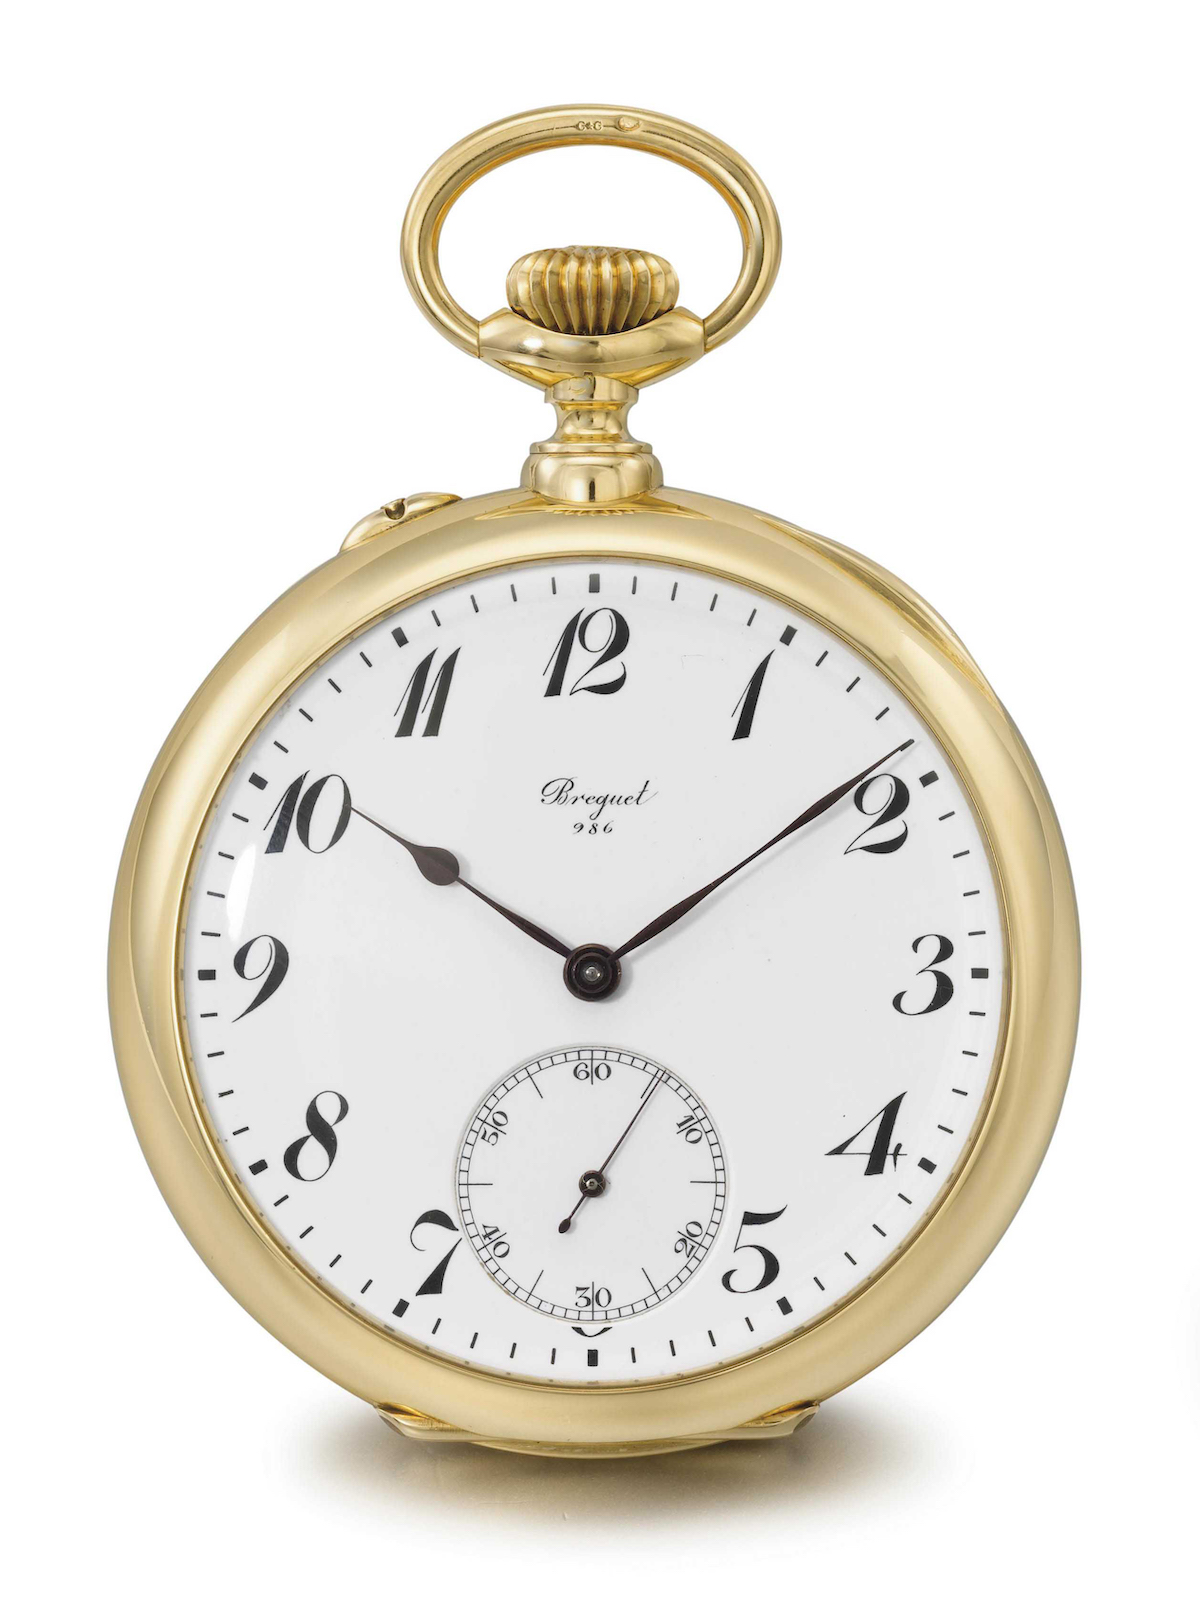 2011_GNV_01383_0226_000(breguet_a_very_fine_rare_and_important_18k_gold_openface_keyless_one_m)